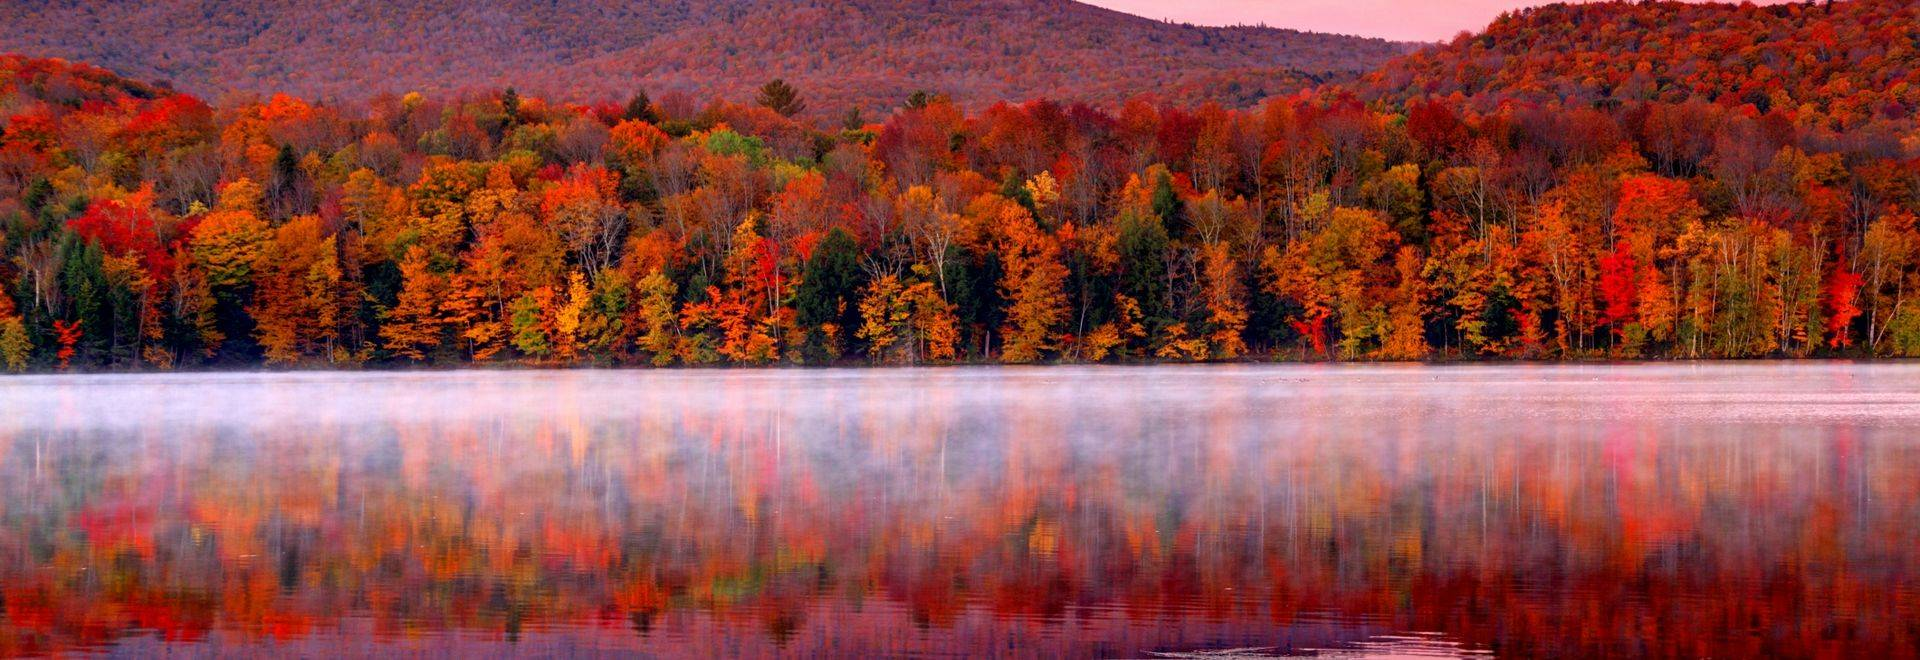 Early morning autumn light near Killington, Vermont. Photo taken on a calm tranquil colorful morning during the peak autumn …